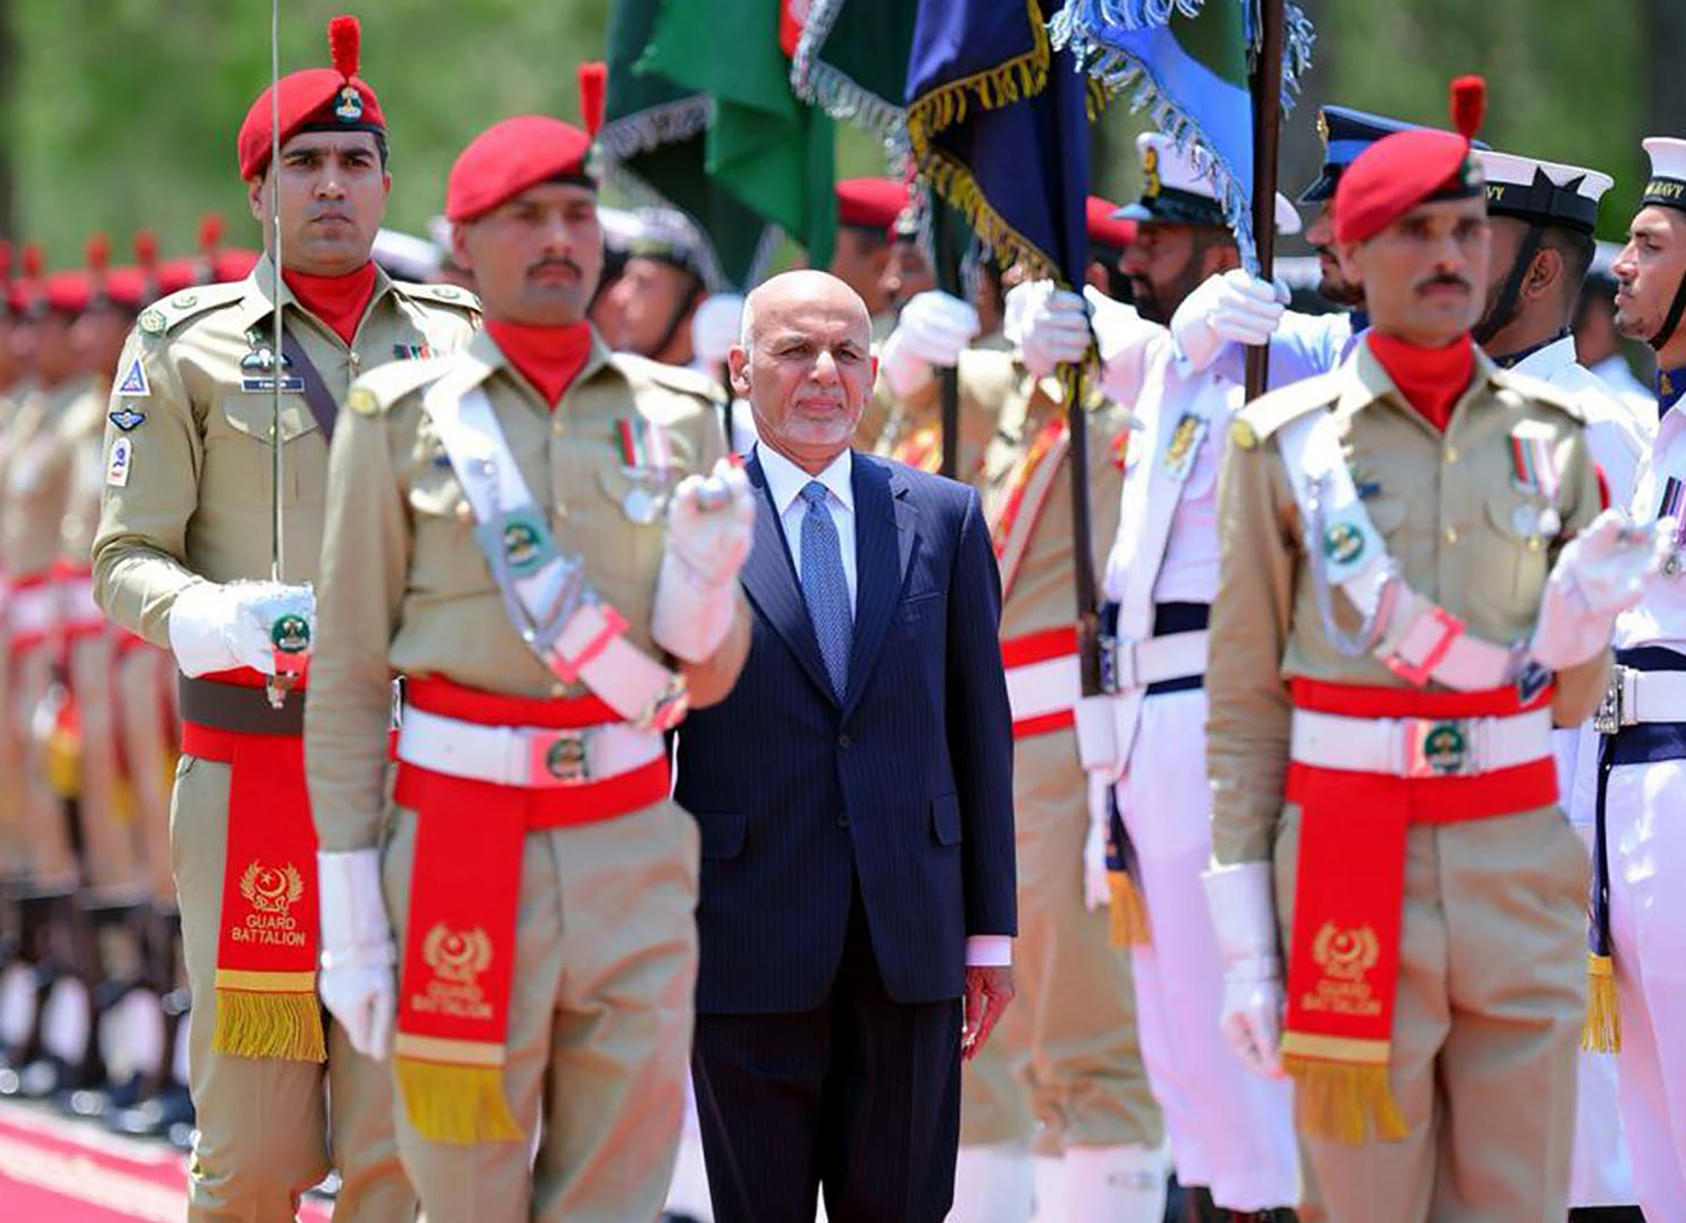 Afghan President Ashraf Ghani arrives in Islamabad on June 27, 2019, for a meeting with Pakistani Prime Minister Imran Khan. (Press Information Department via AP)